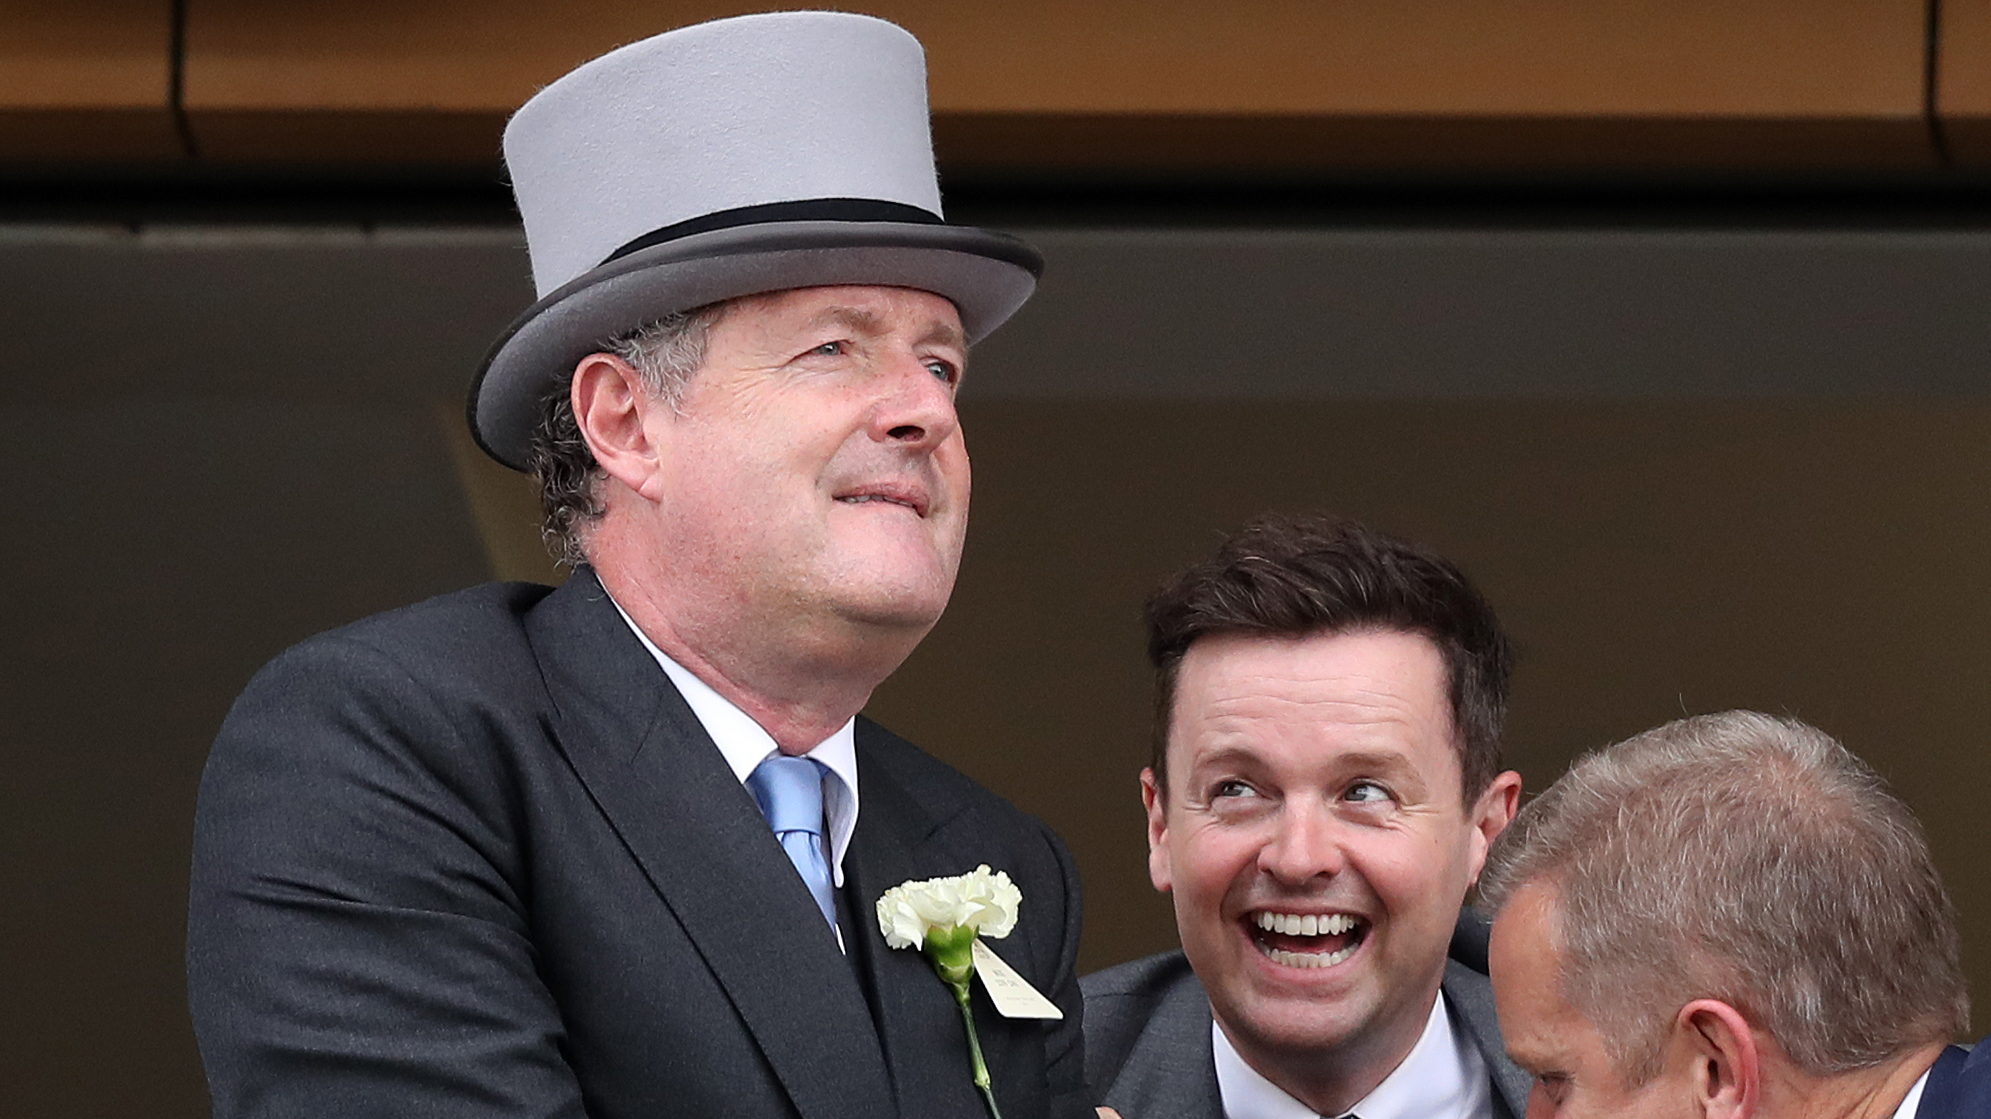 Piers Morgan Hammered After Mocking Daniel Craig For Carrying Baby